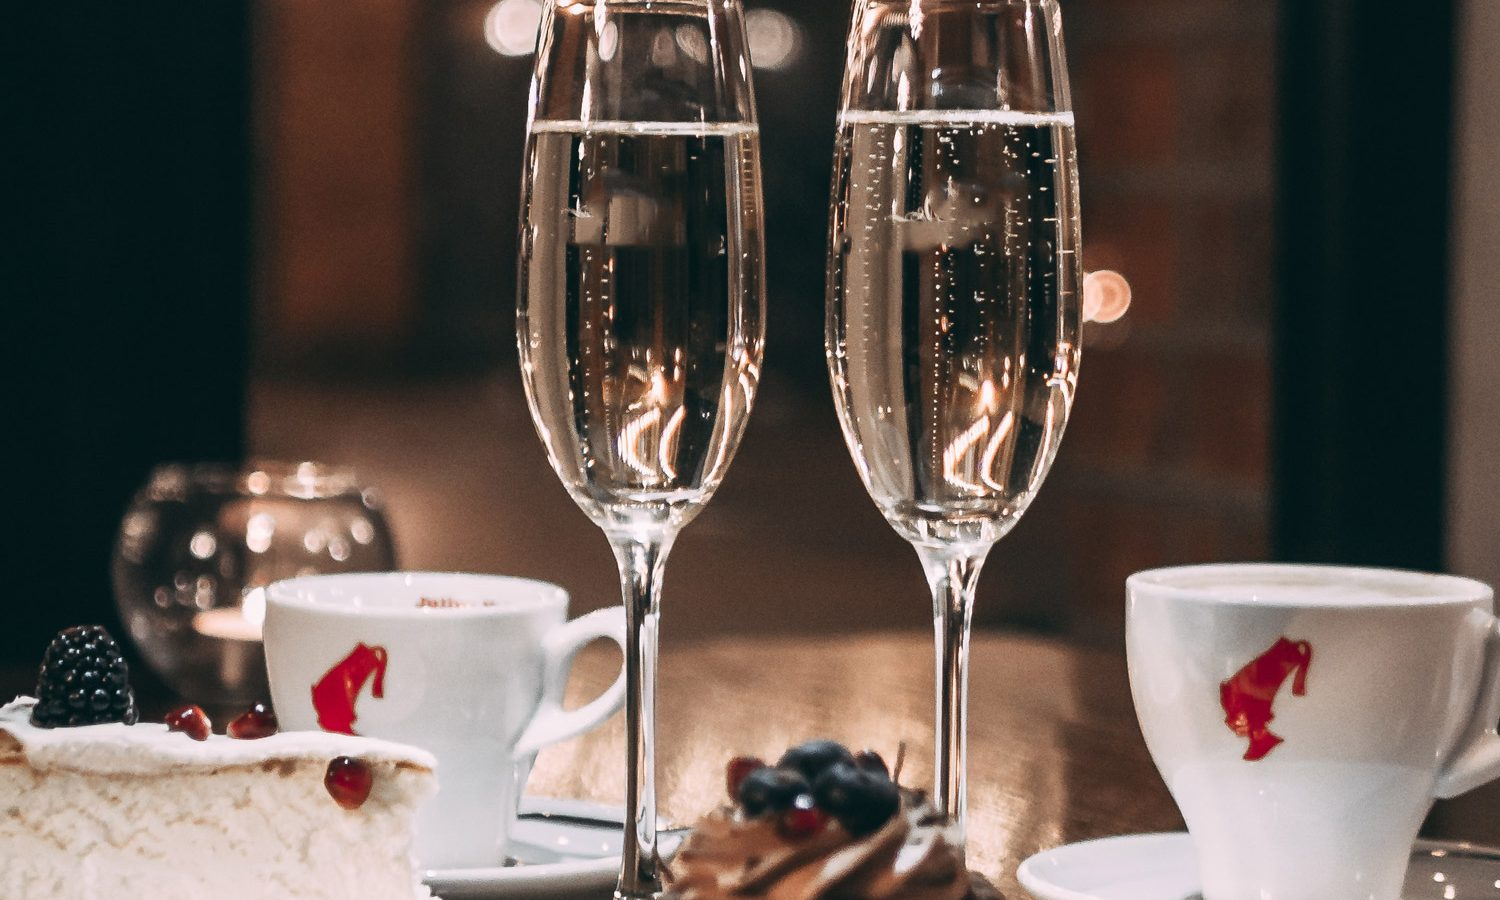 Two champagne glasses with desserts